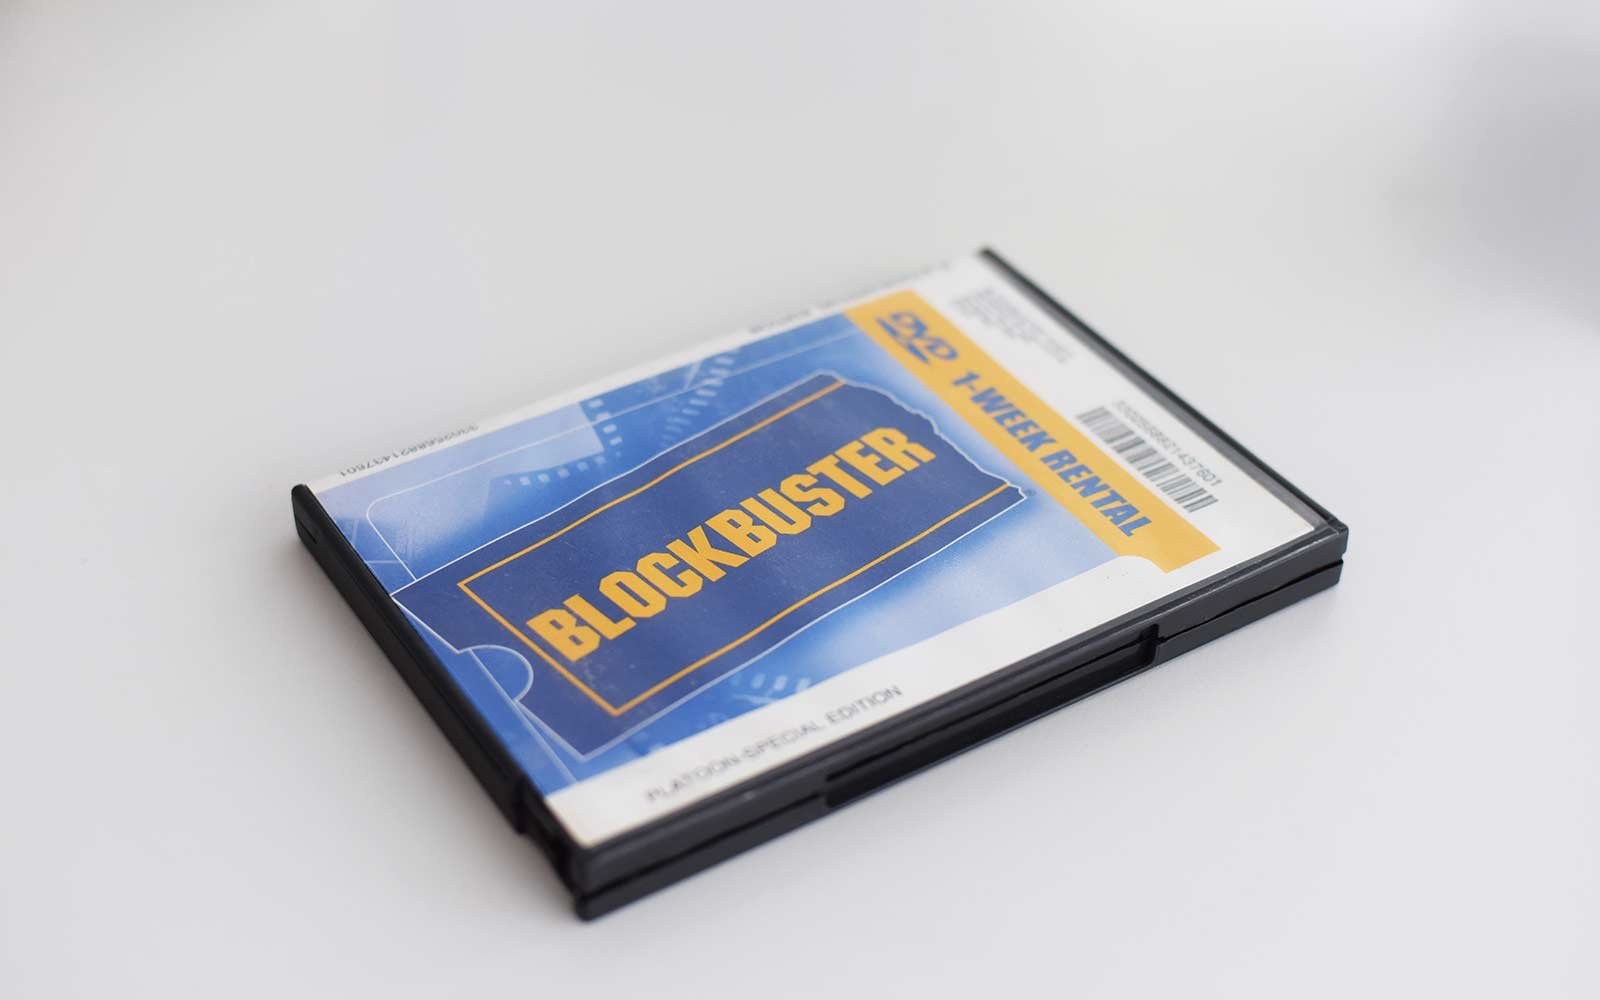 blockbuster dvd rental case